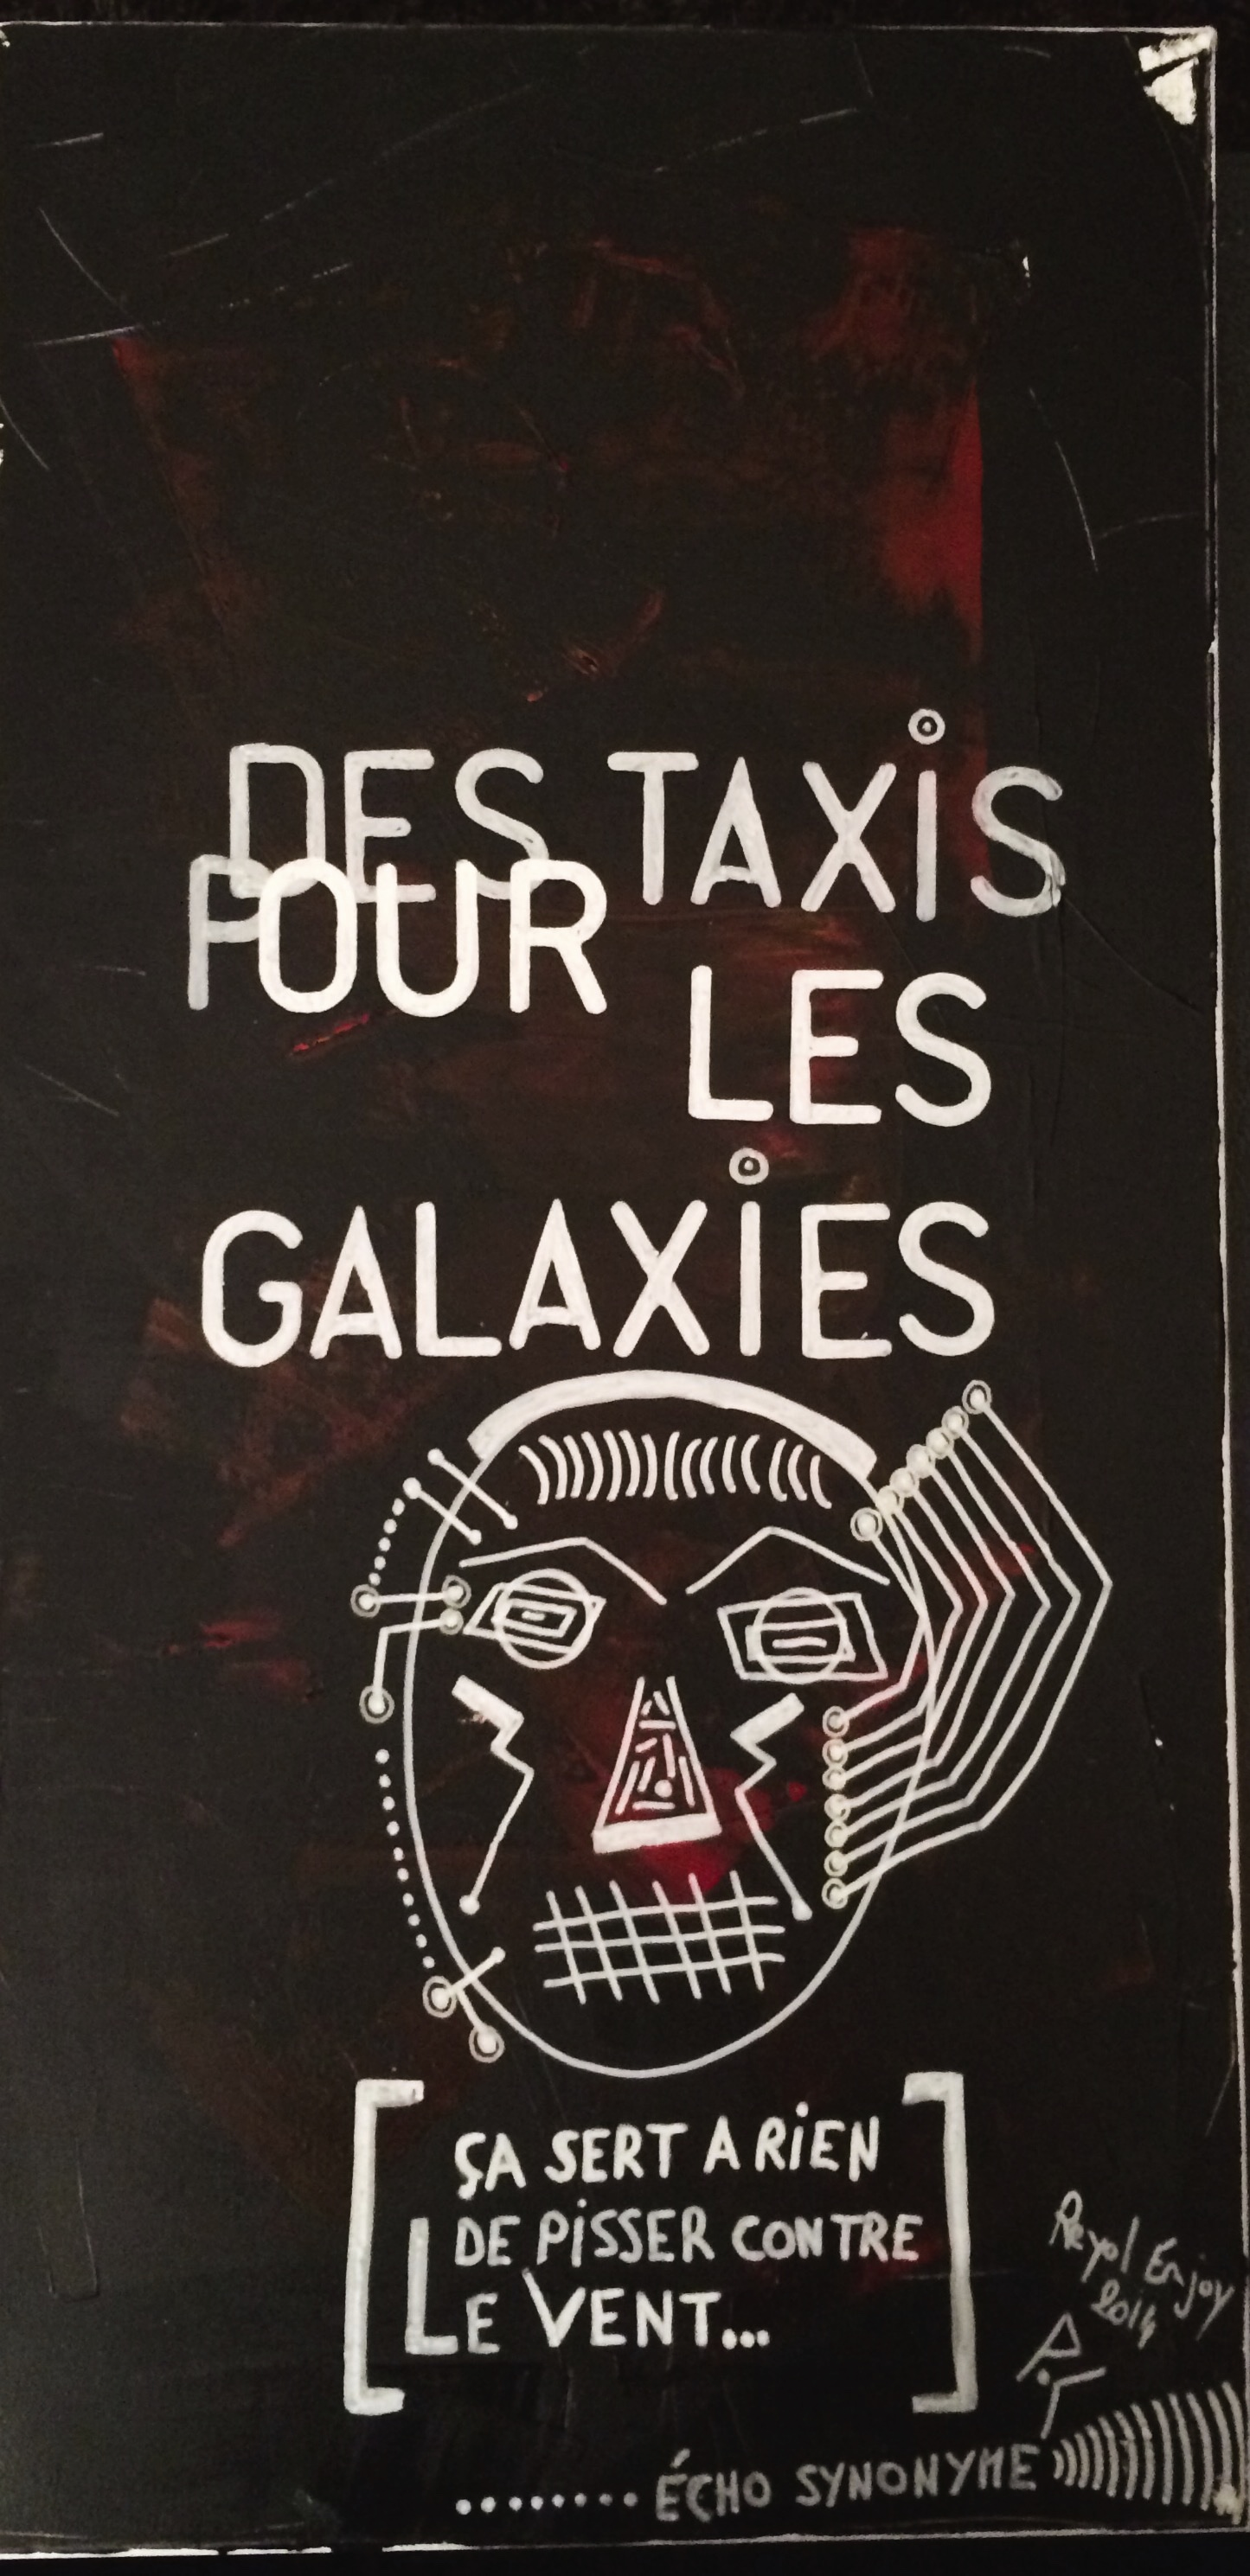 Des taxis